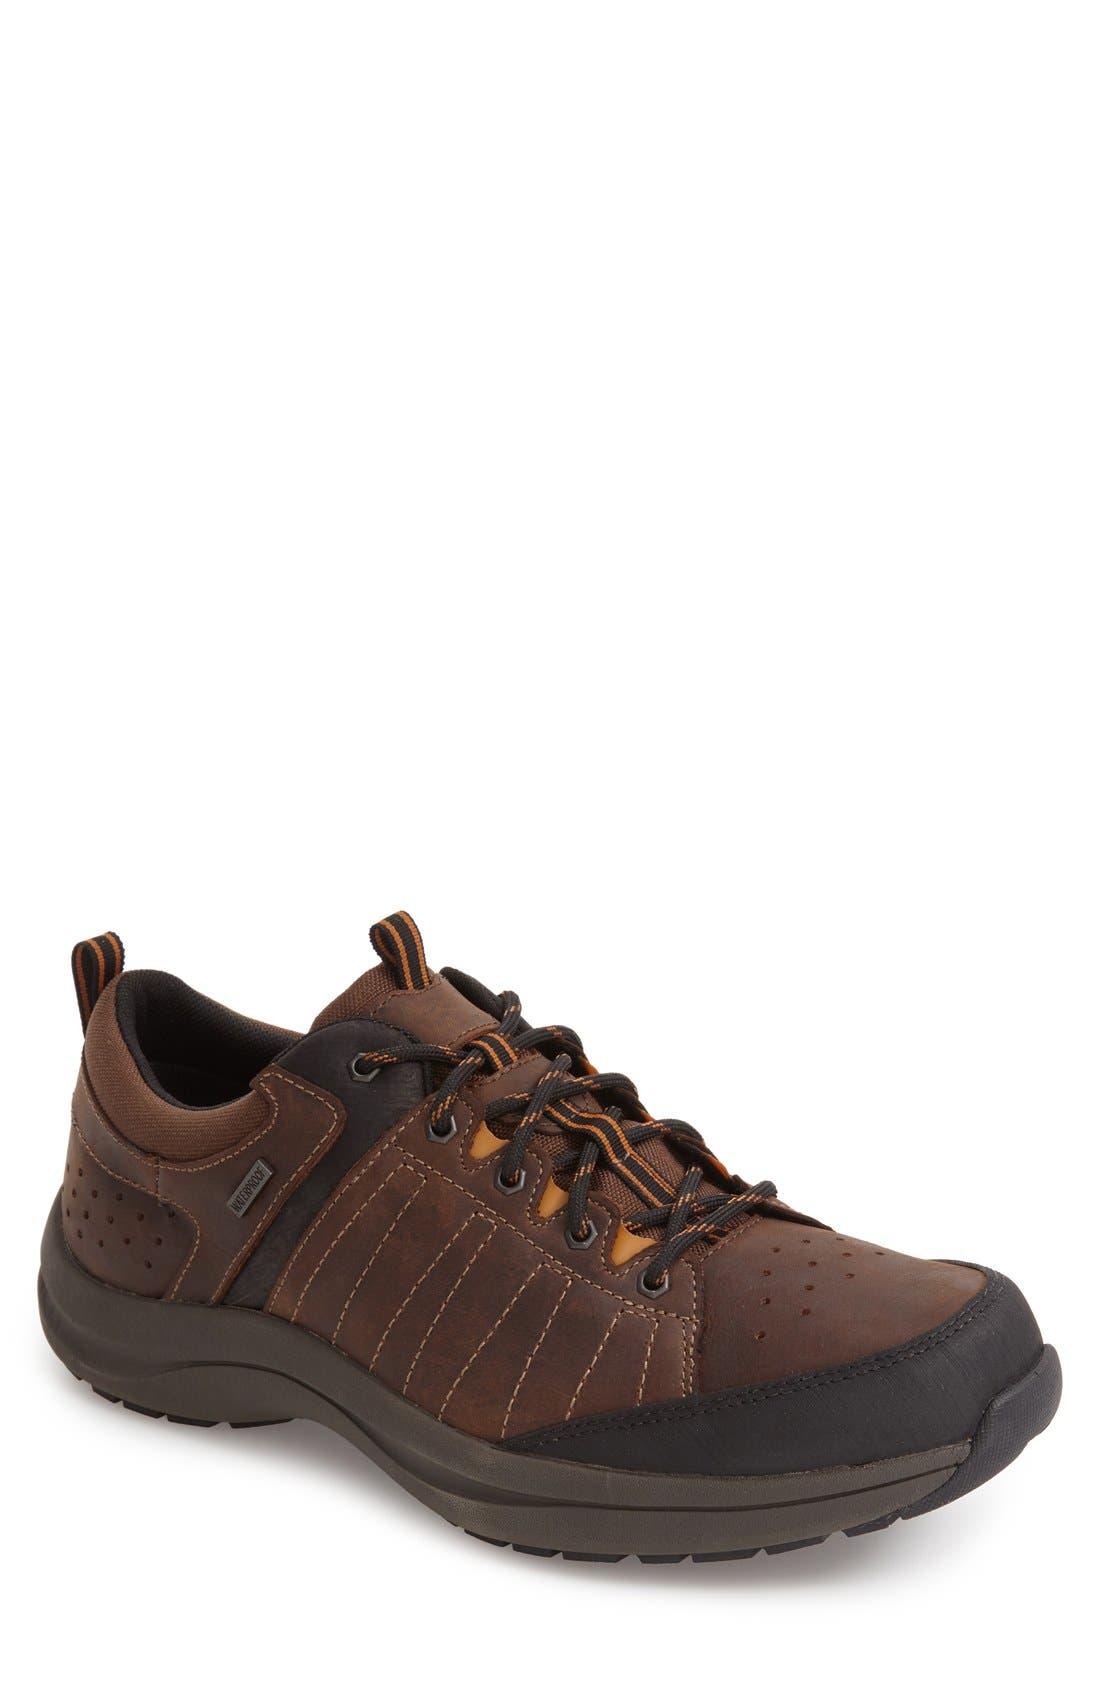 Dunham Seth-Dun Waterproof Sneaker (Men)